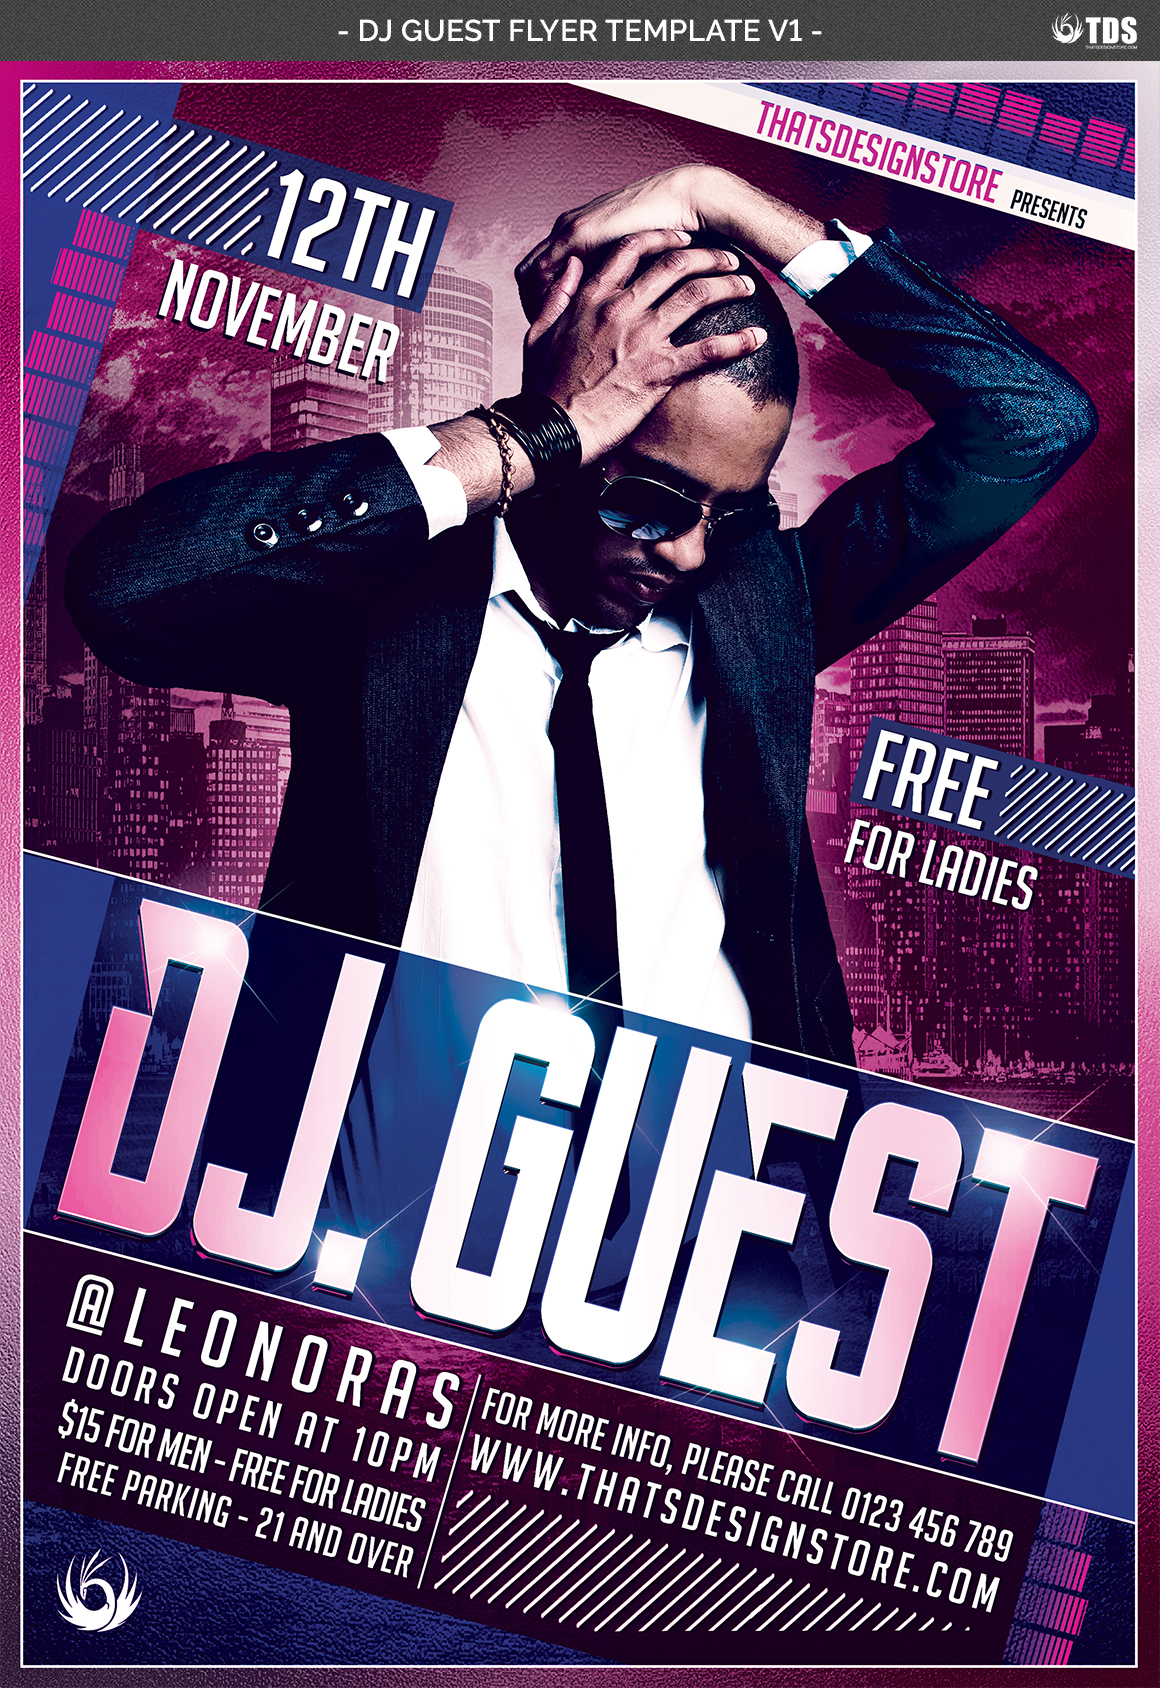 DJ Guest Flyer Template V1 example image 4